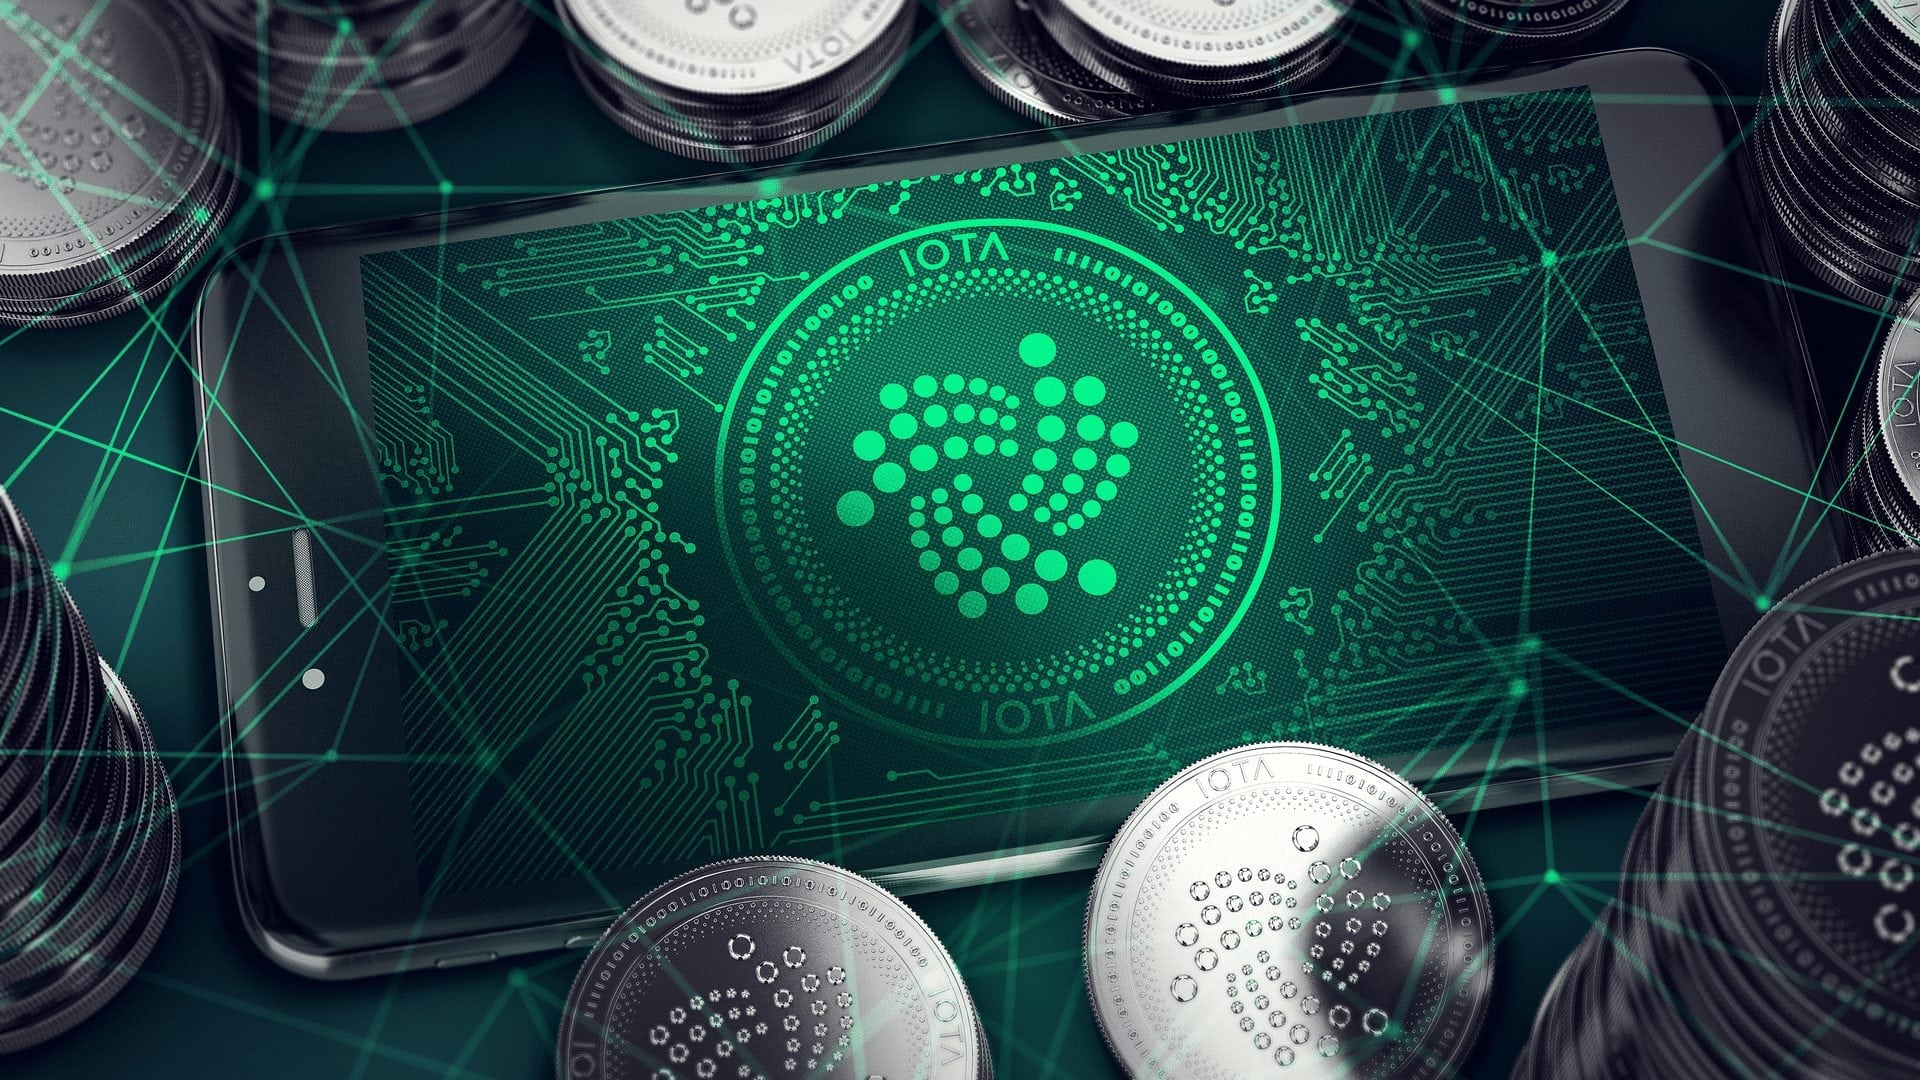 buy iota 1 - IOTA's Provisional Roadmap For Qubic Website Is Out - Preparing For The Upcoming Age Of IoT